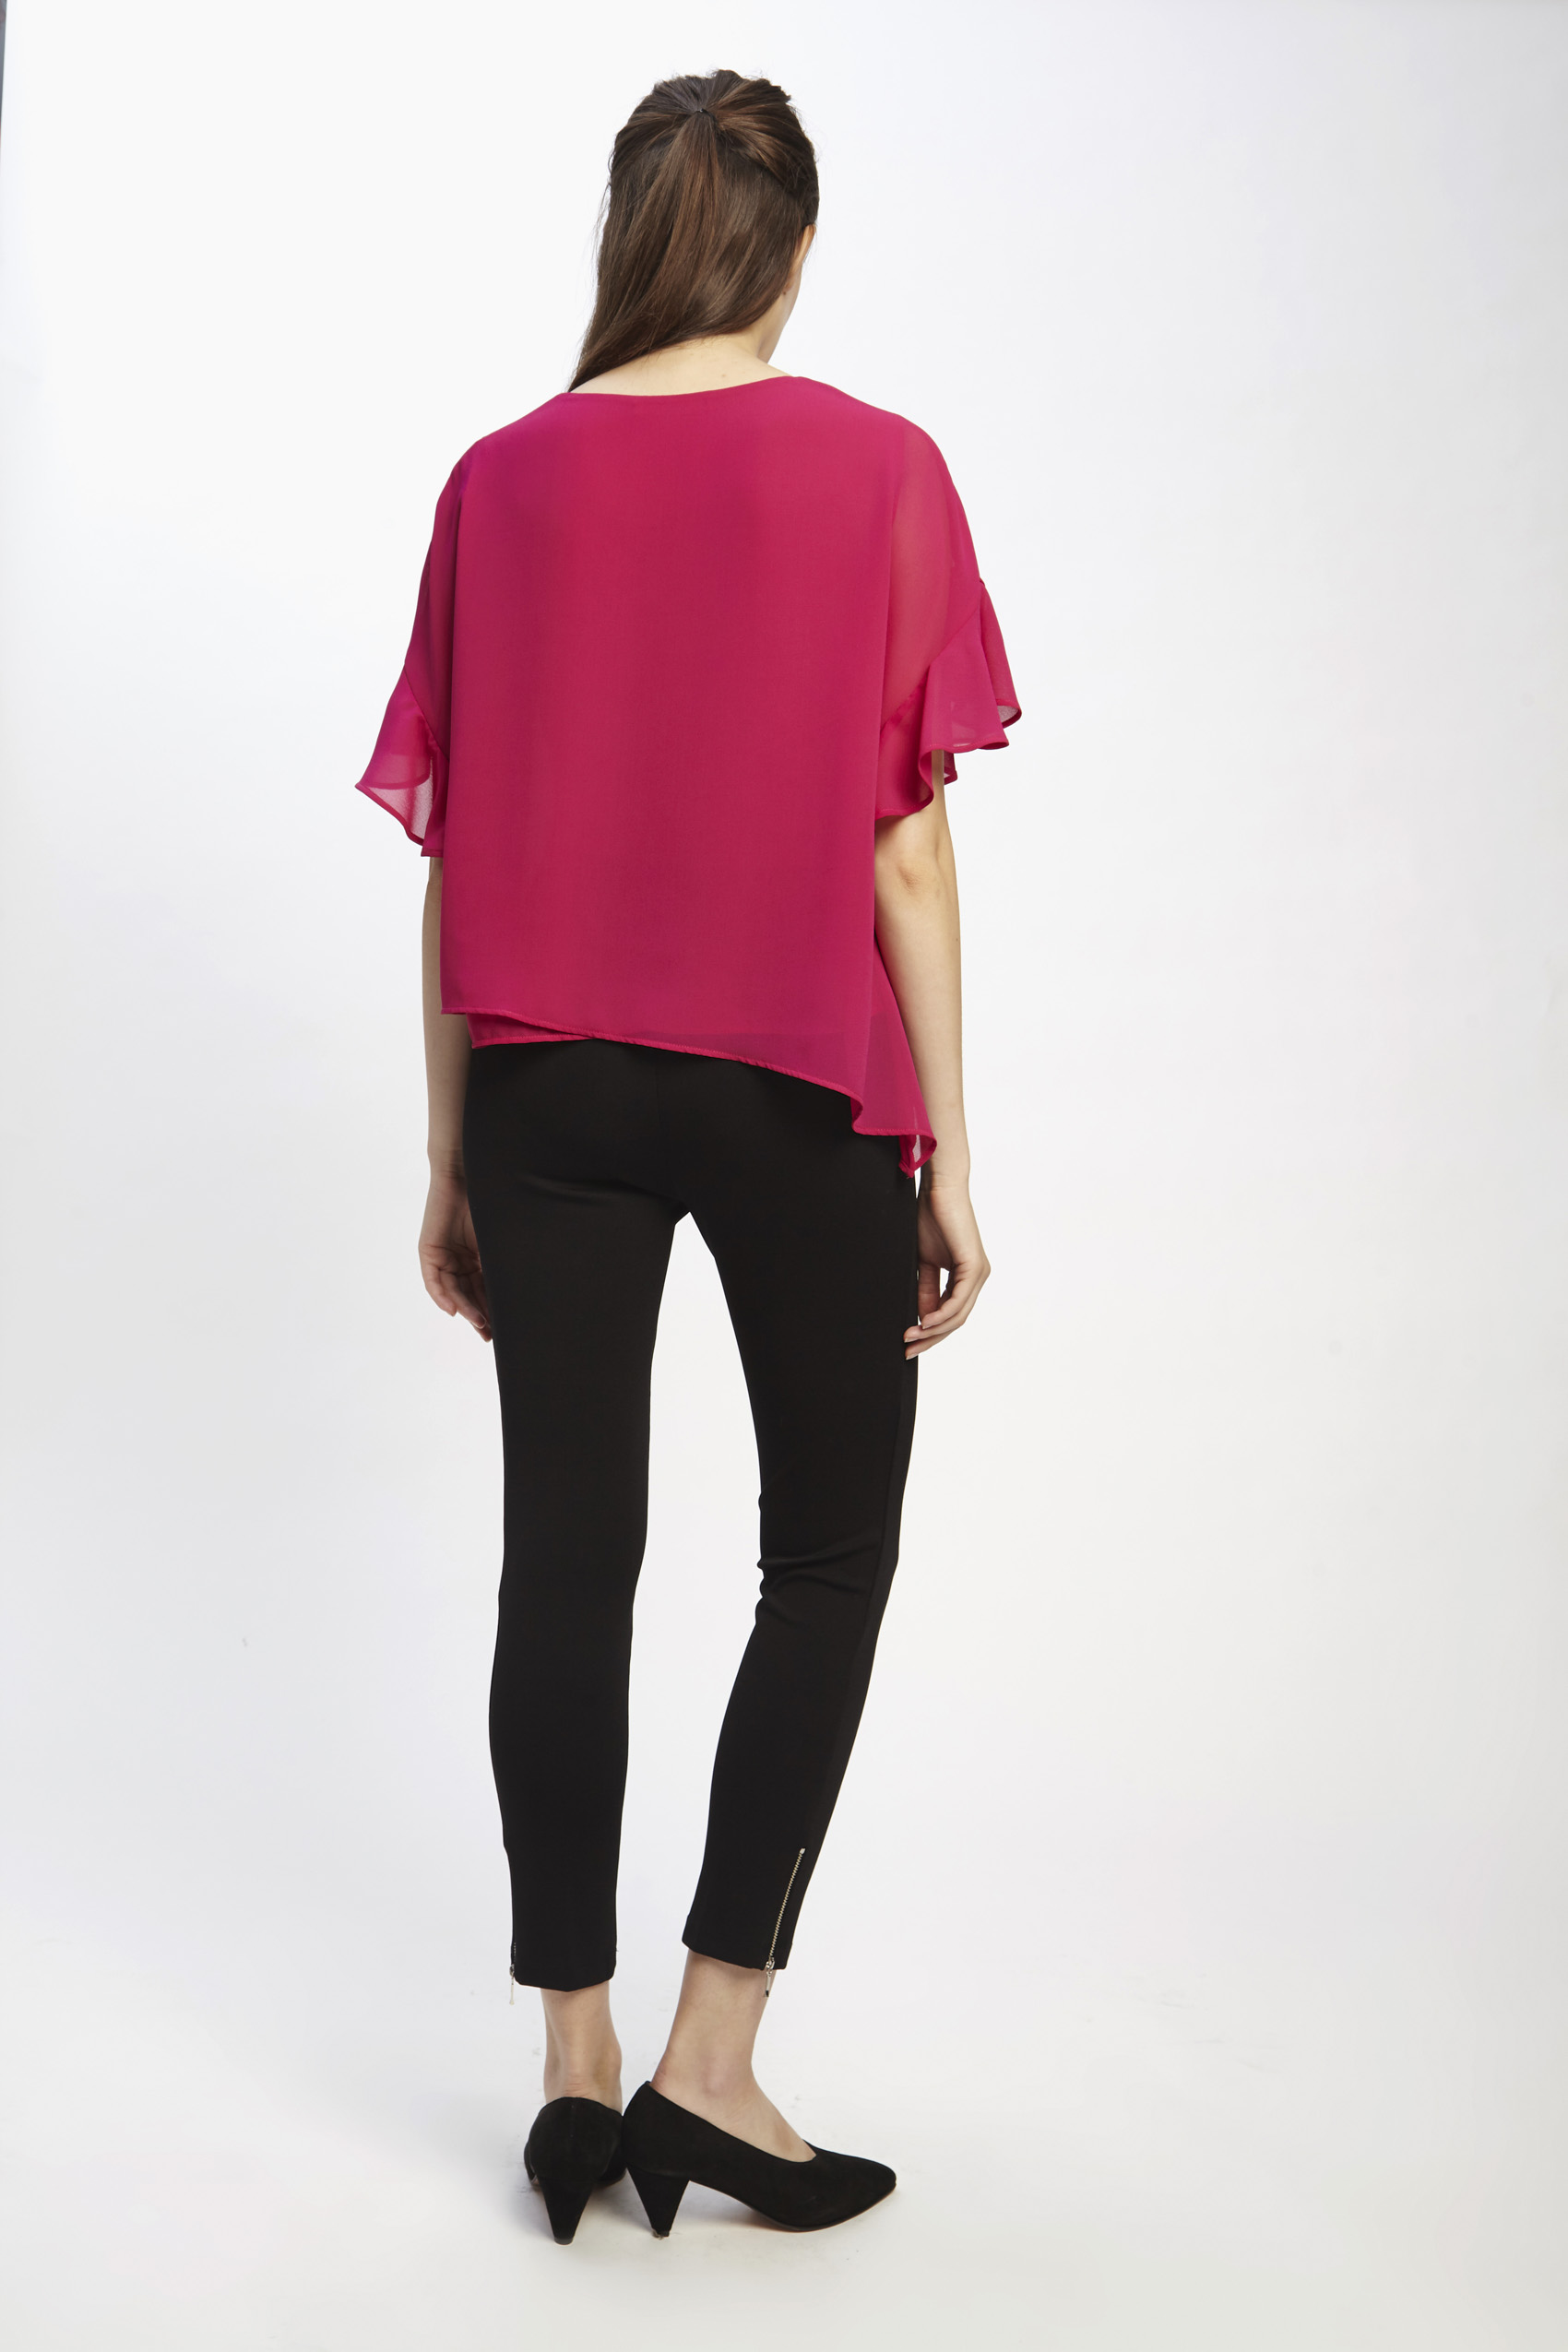 awada_blusa-candy_32-25-2019__picture-1888